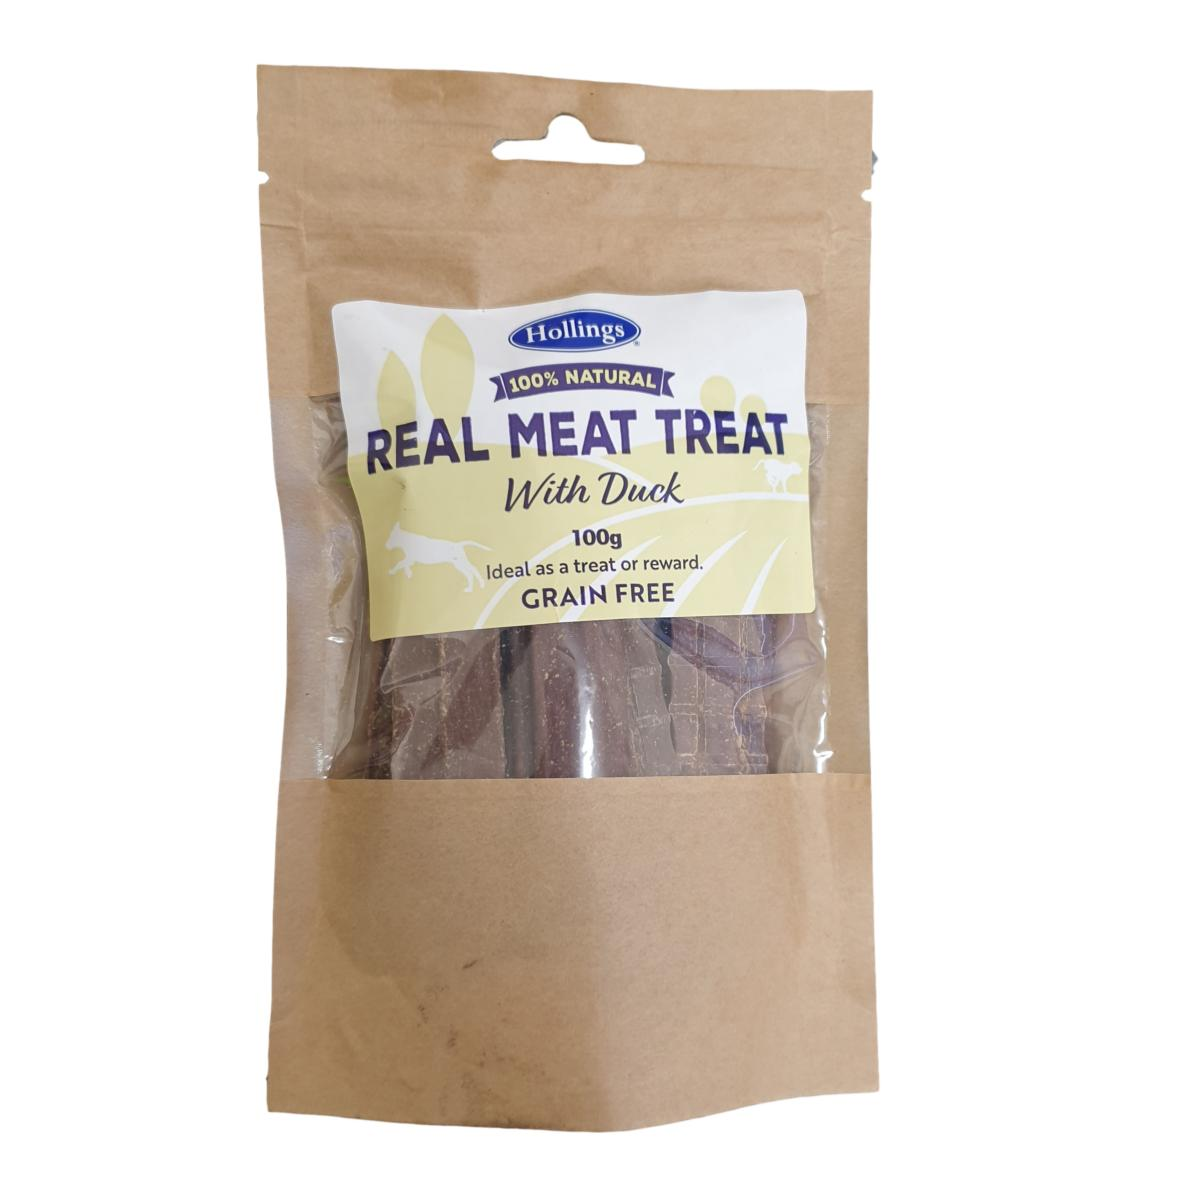 Hollings Real Meat Treat with Duck 100gm